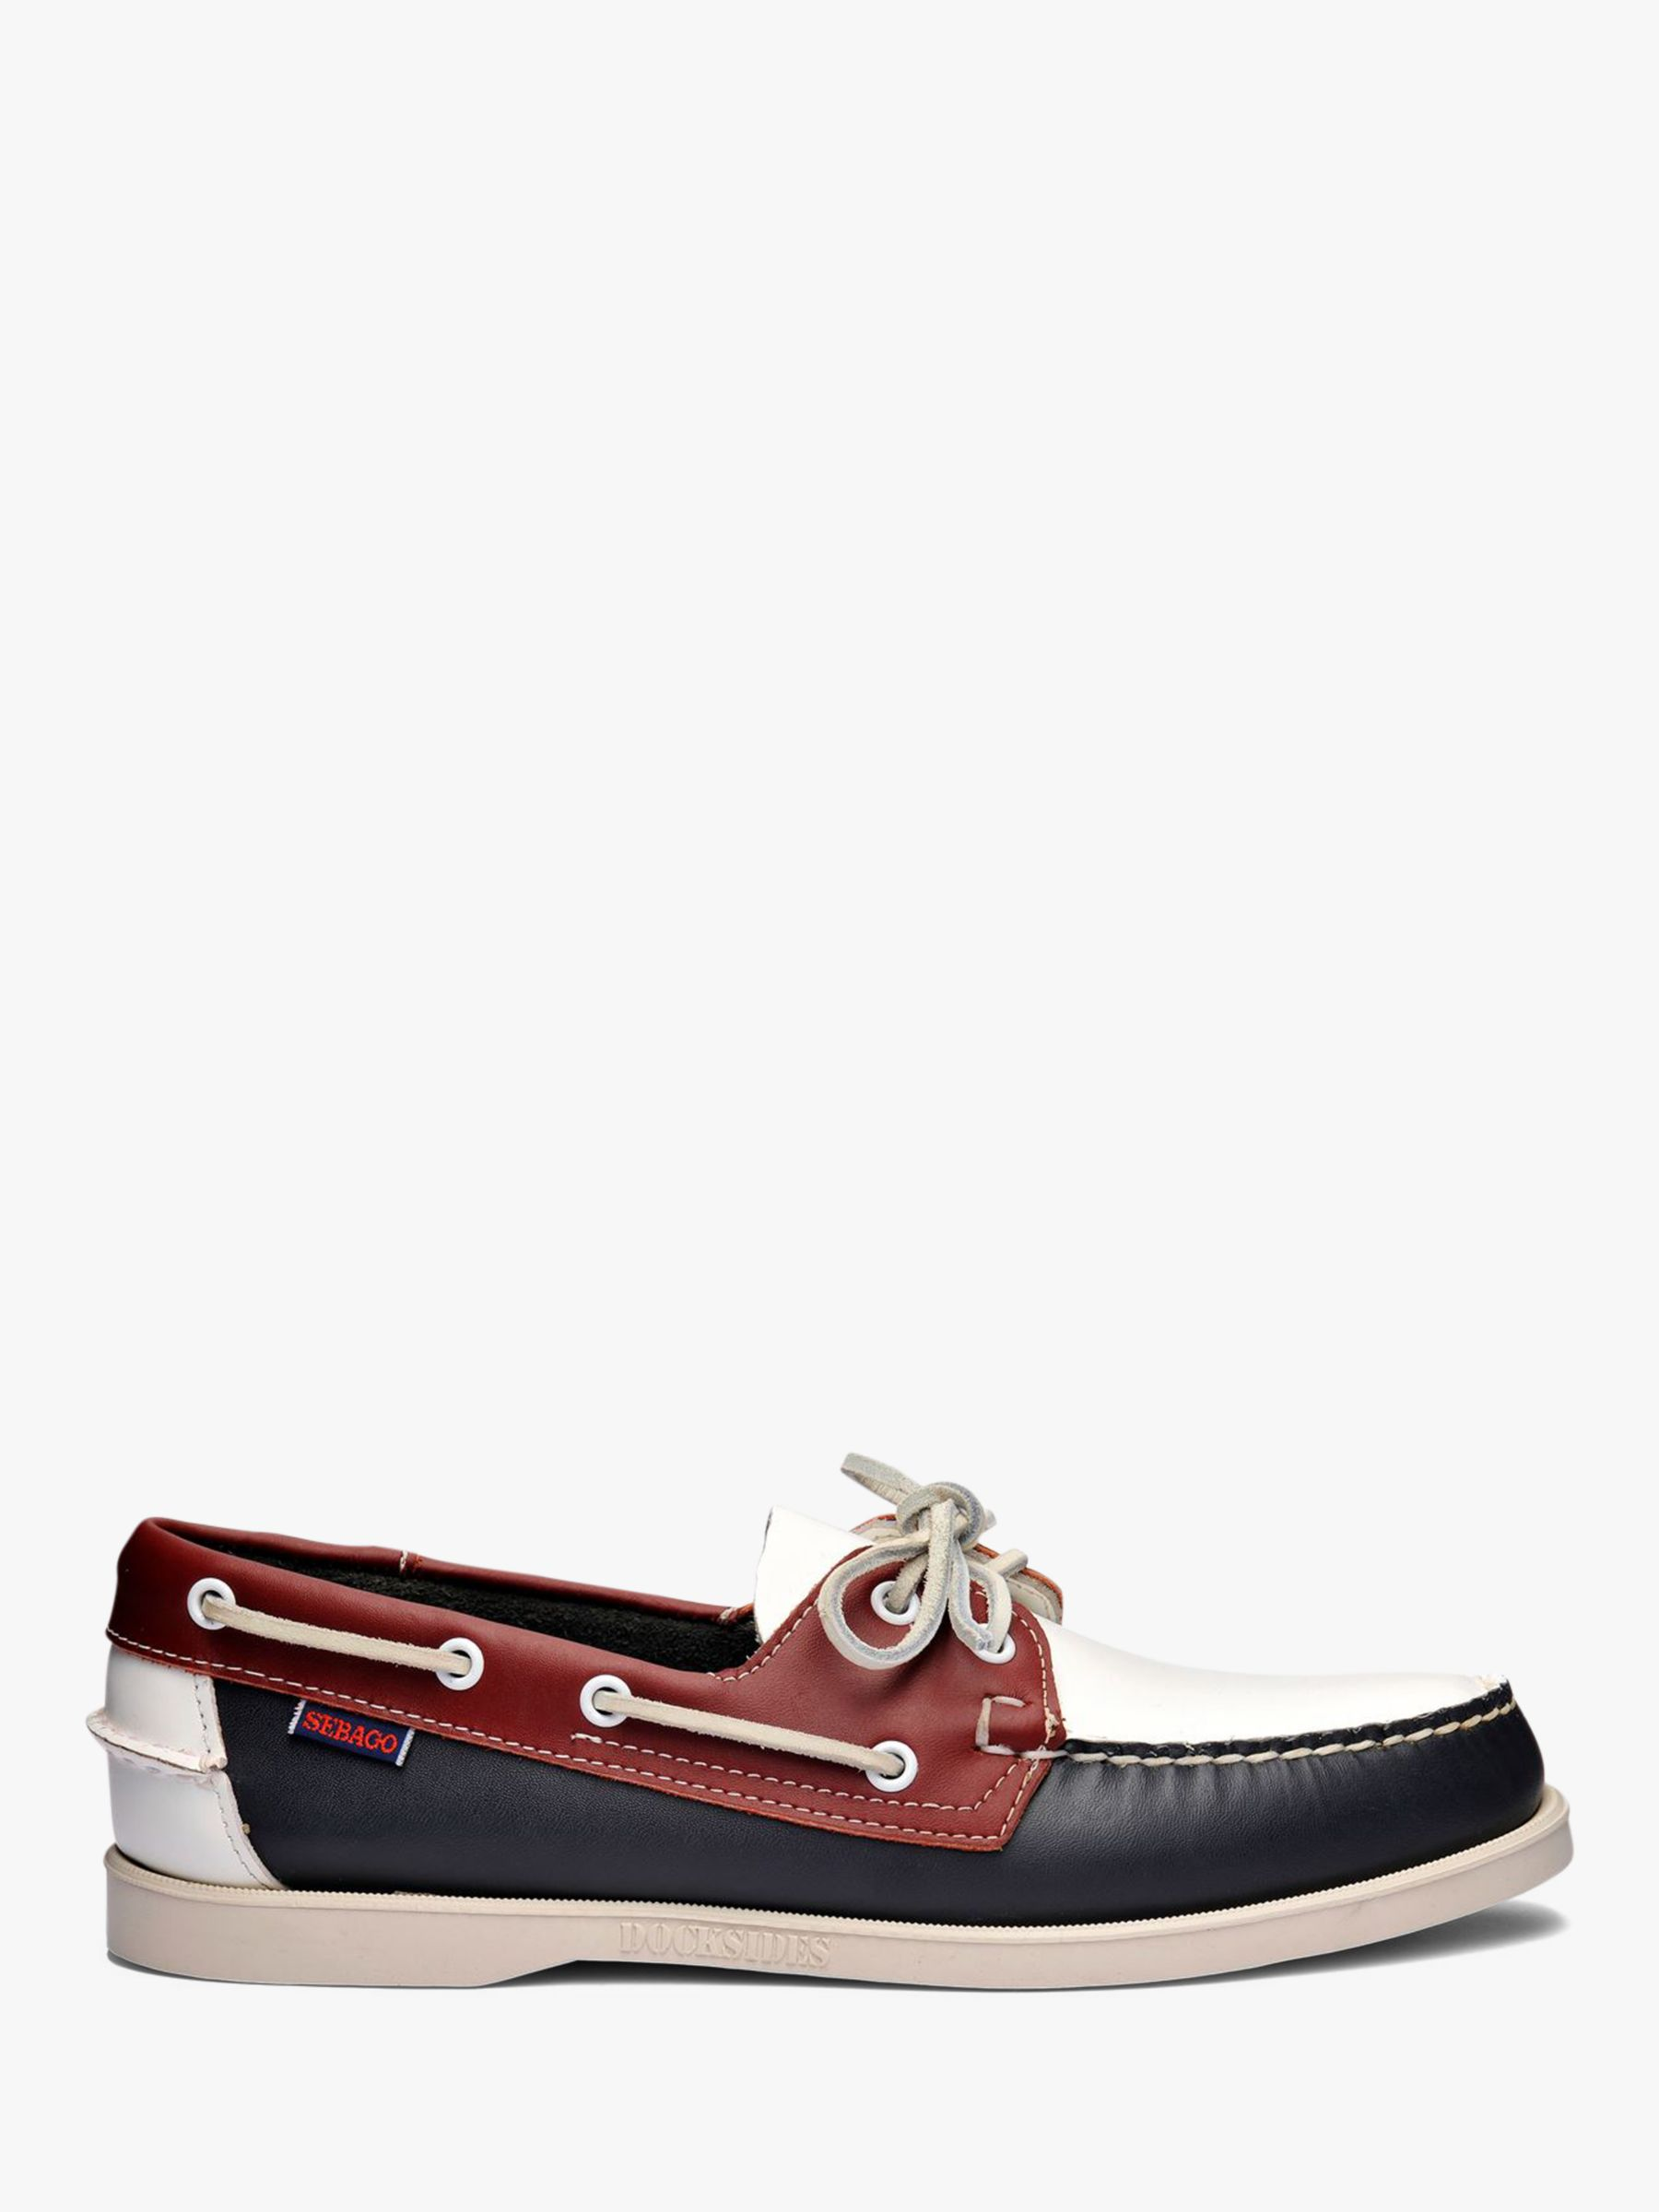 Sebago Sebago Portland Spinnaker Leather Boat Shoes, Navy/Red/White